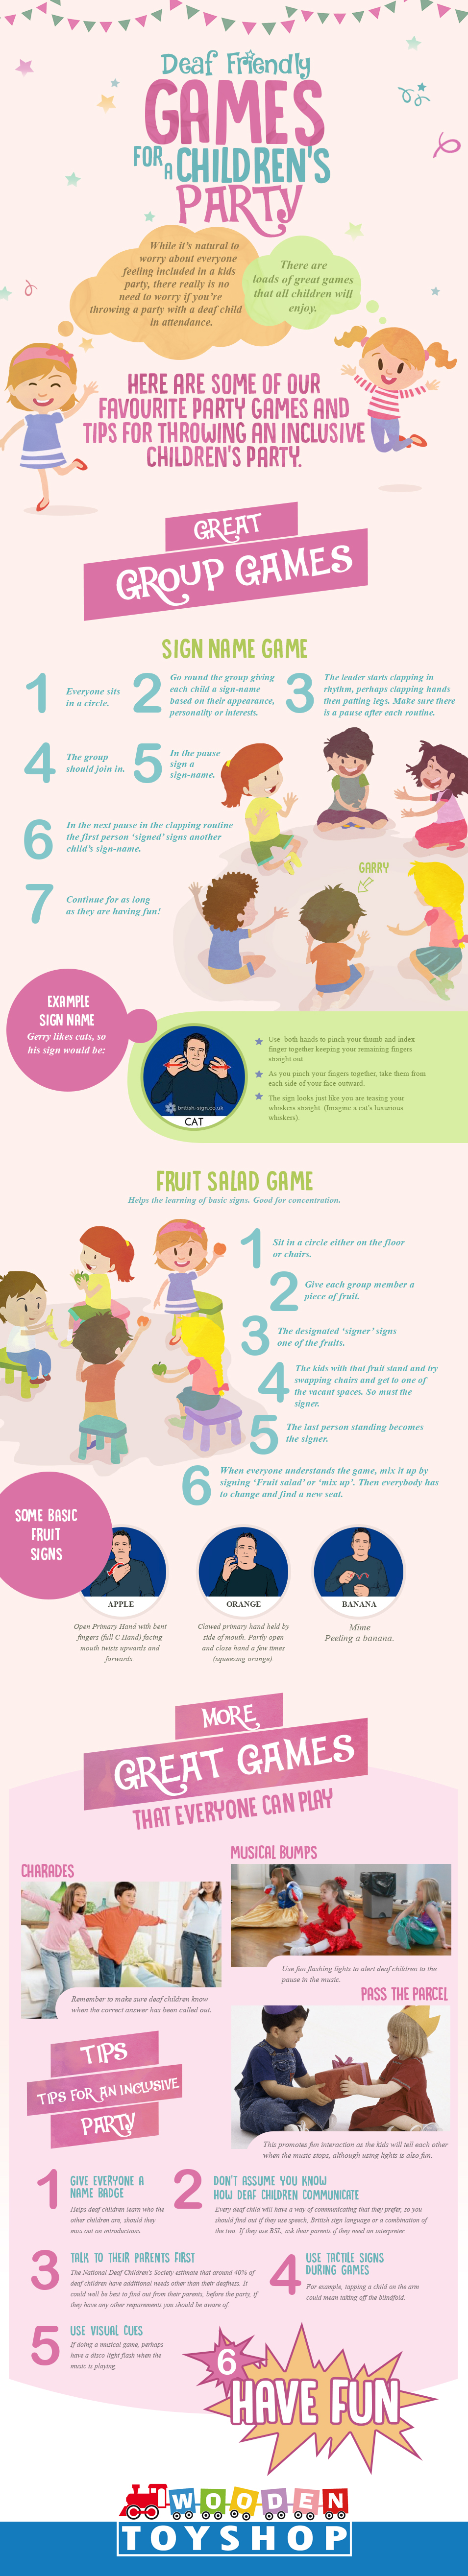 Deaf-friendly games for a childrens party